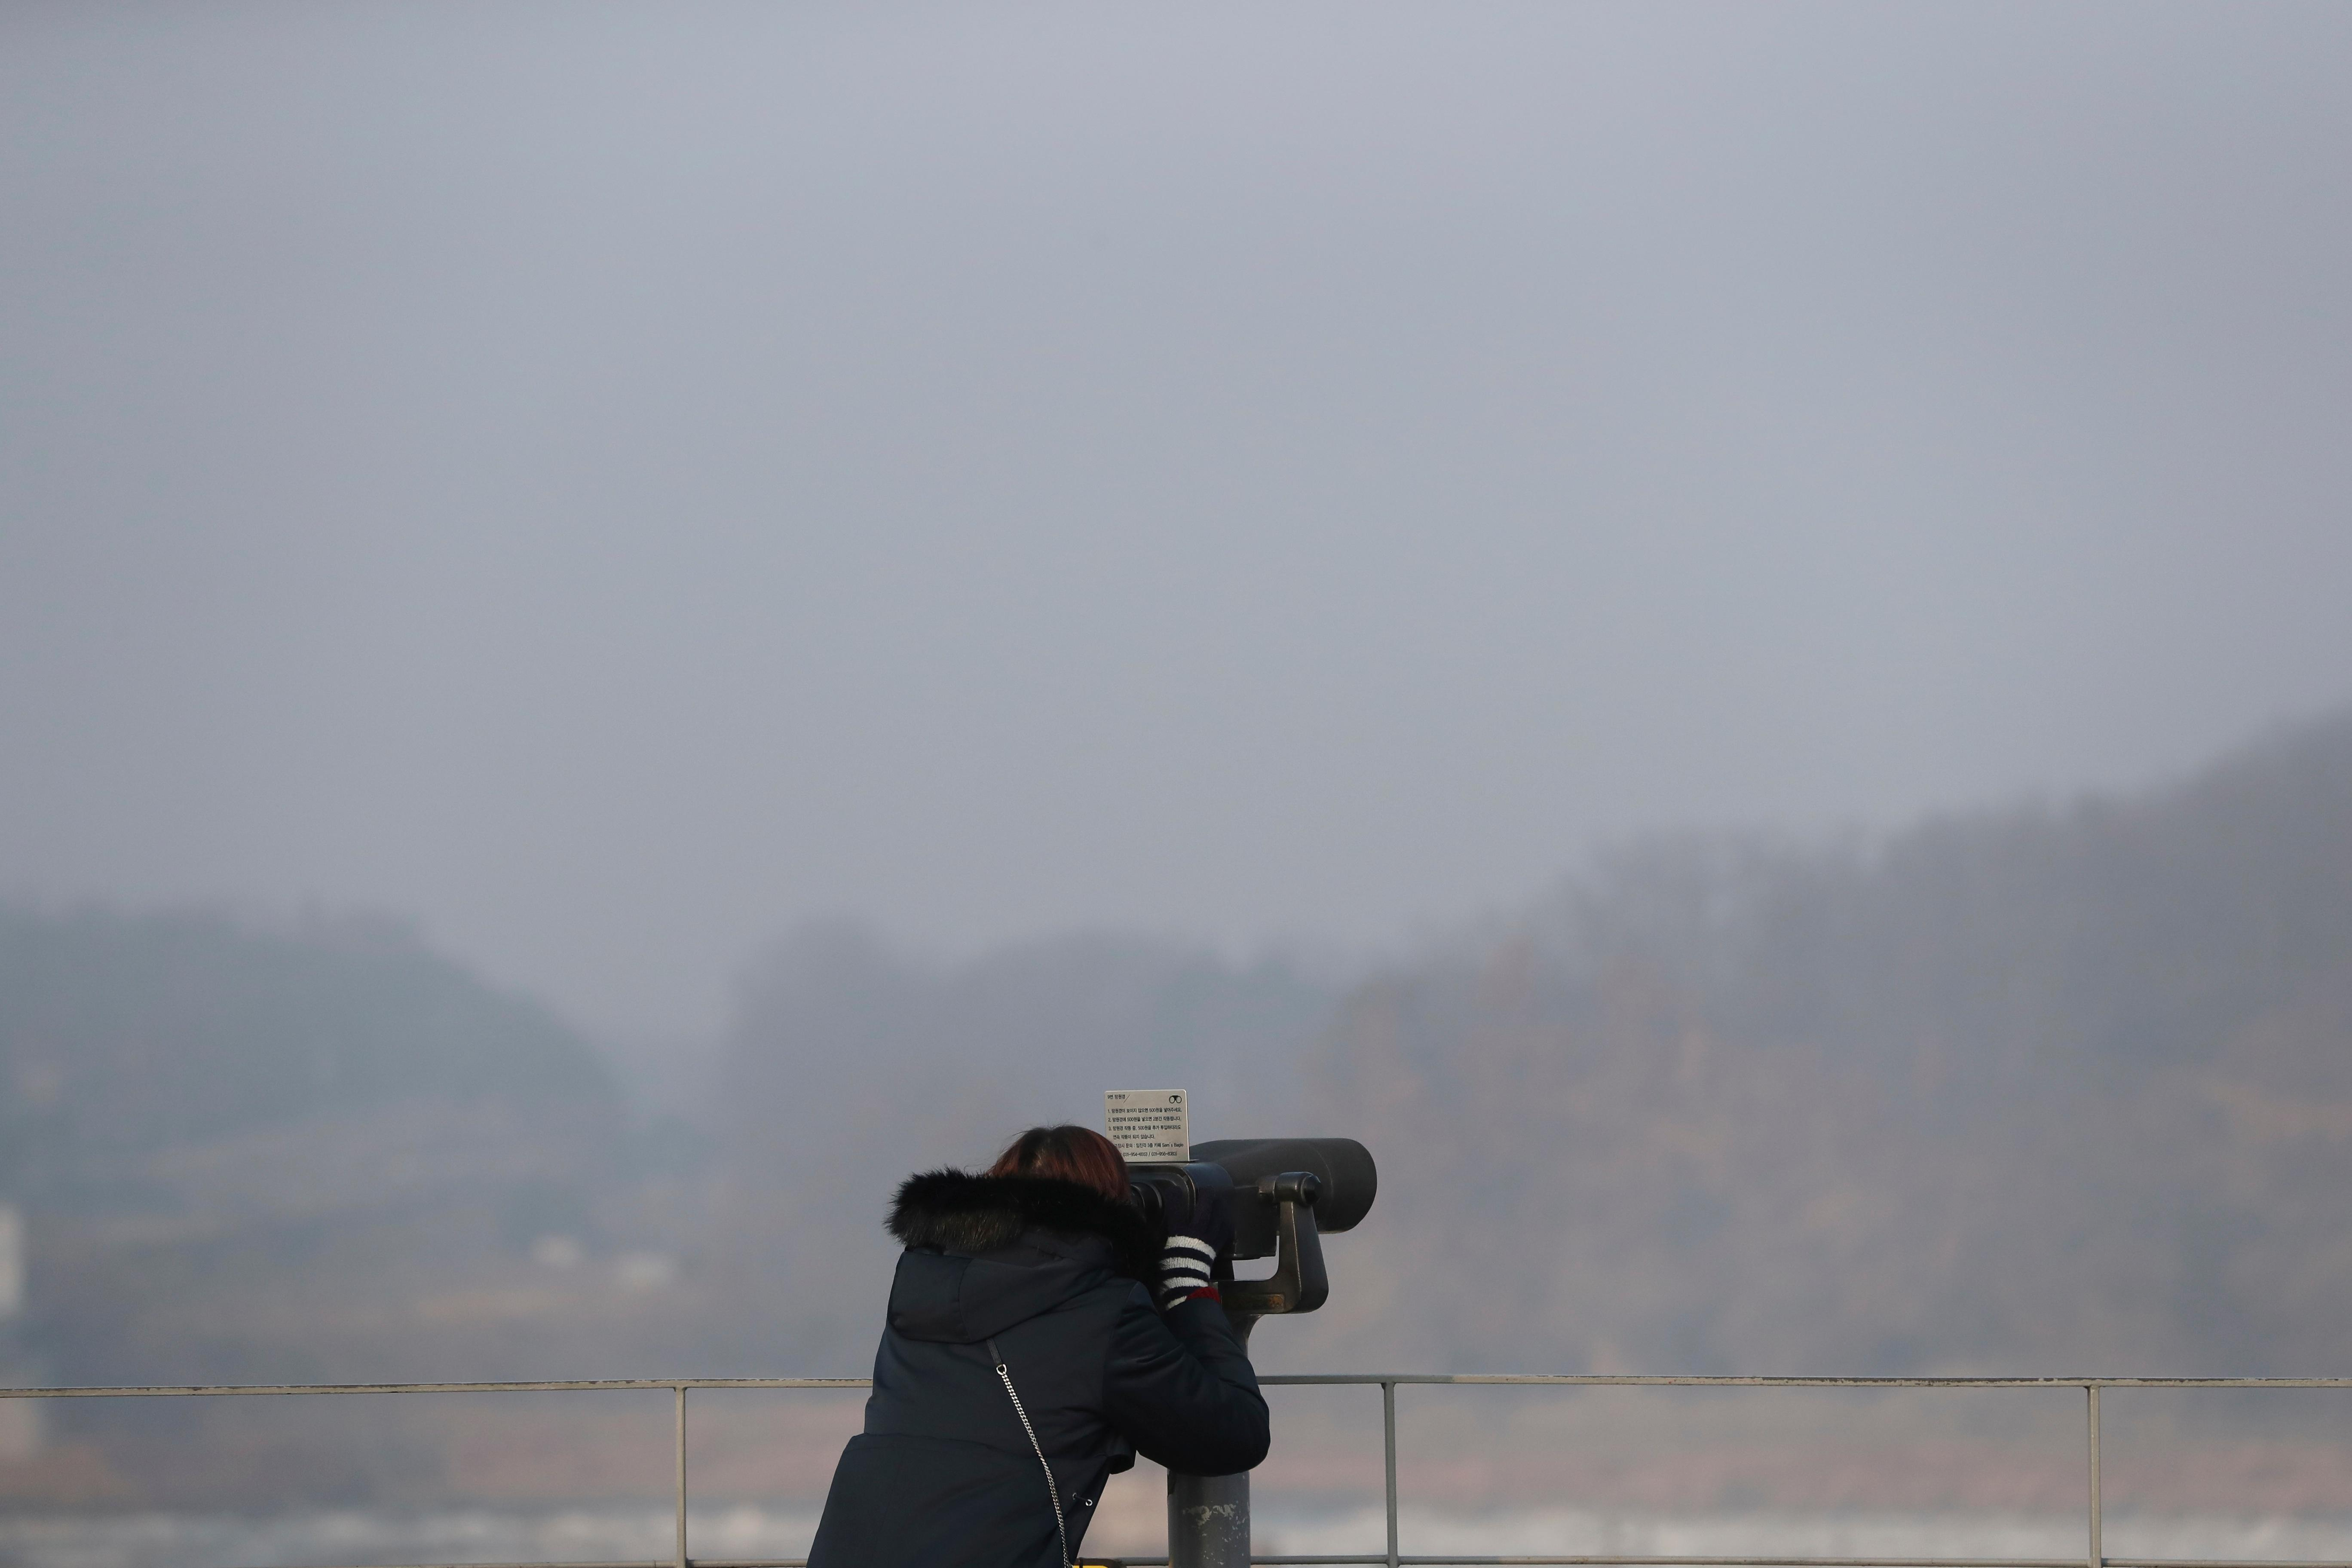 A visitor uses binoculars to see the north side at the Imjingak Pavilion in Paju, South Korea, Wednesday, Jan. 17, 2018. The two Koreas are meeting Wednesday for the third time in about 10 days to continue their discussions on Olympics cooperation, days ahead of talks with the IOC on North Korean participation in the upcoming Winter Games in the South. (AP Photo/Lee Jin-man)